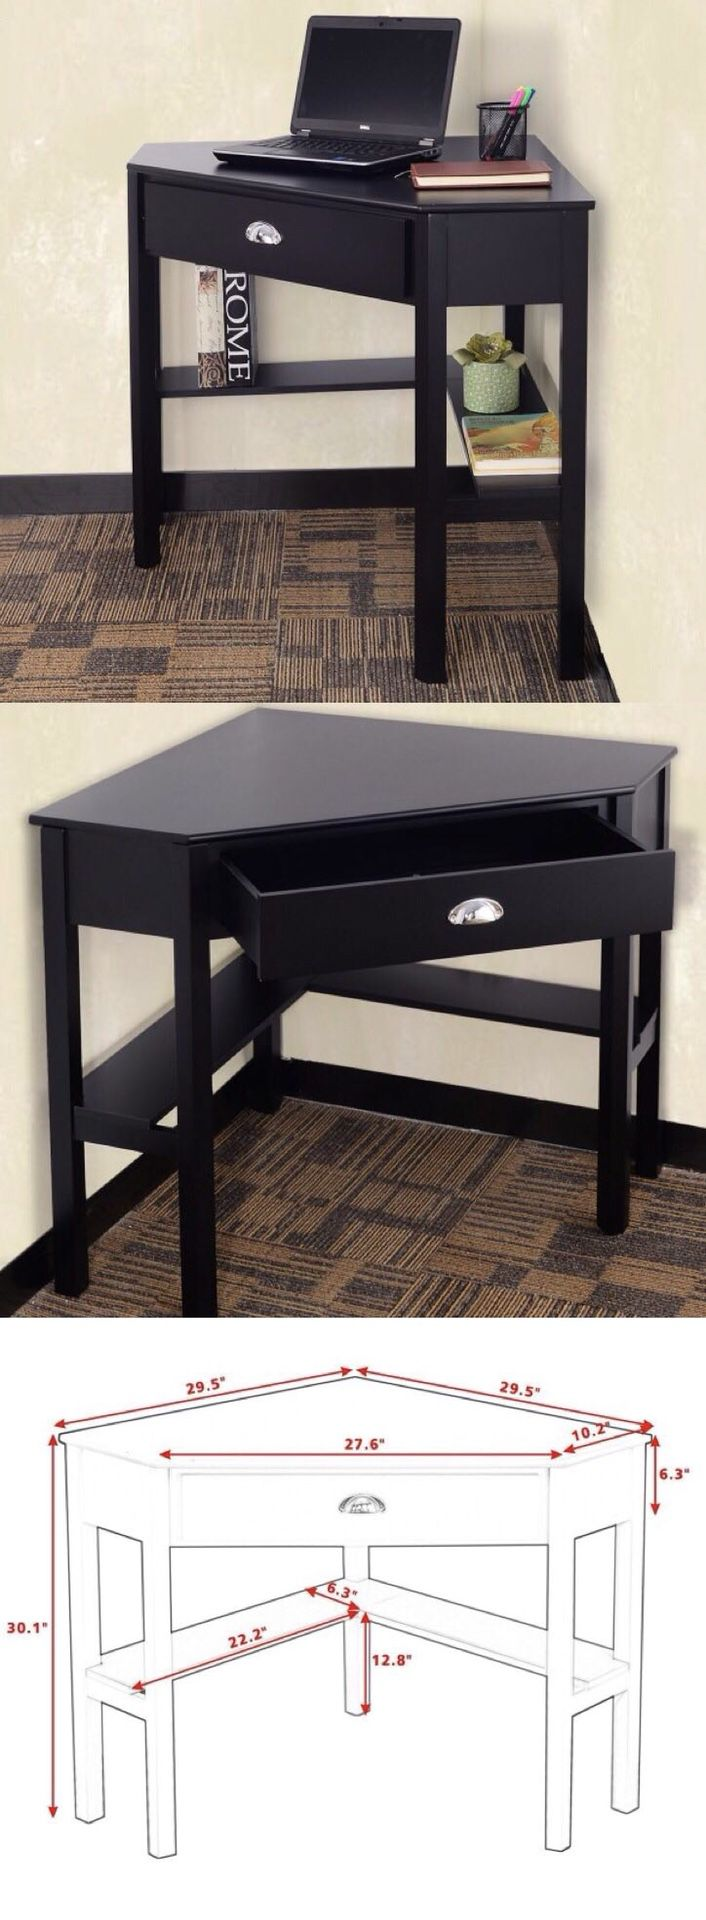 New in box black wooden space saving corner computer laptop desk table with drawer 30x30x30 inches